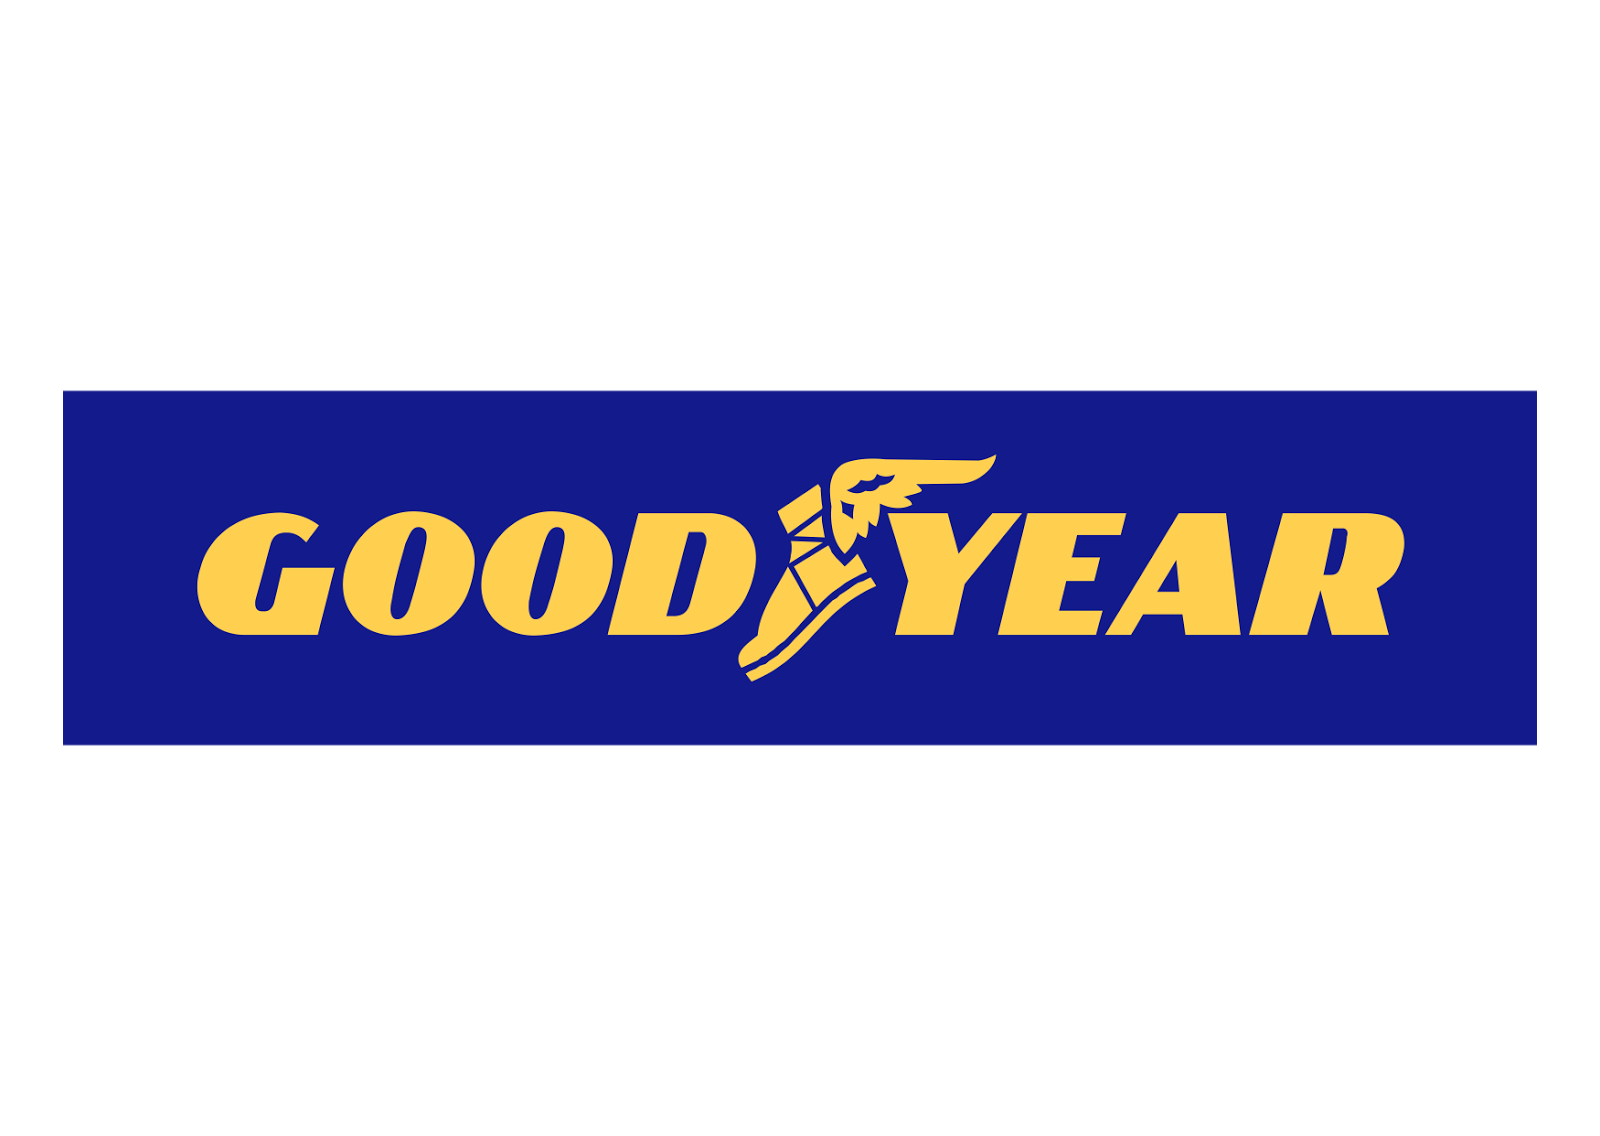 the history behind goodyear s logo In 1834, he began experimenting with natural rubber in 1839, he accidentally discovered the process of vulcanization he struggled to patent it, as thomas hancock had recently patented vulcanized rubber goodyear died broke on july 19, 1860 in new york city the goodyear tire and rubber company was founded in his name in 1898.